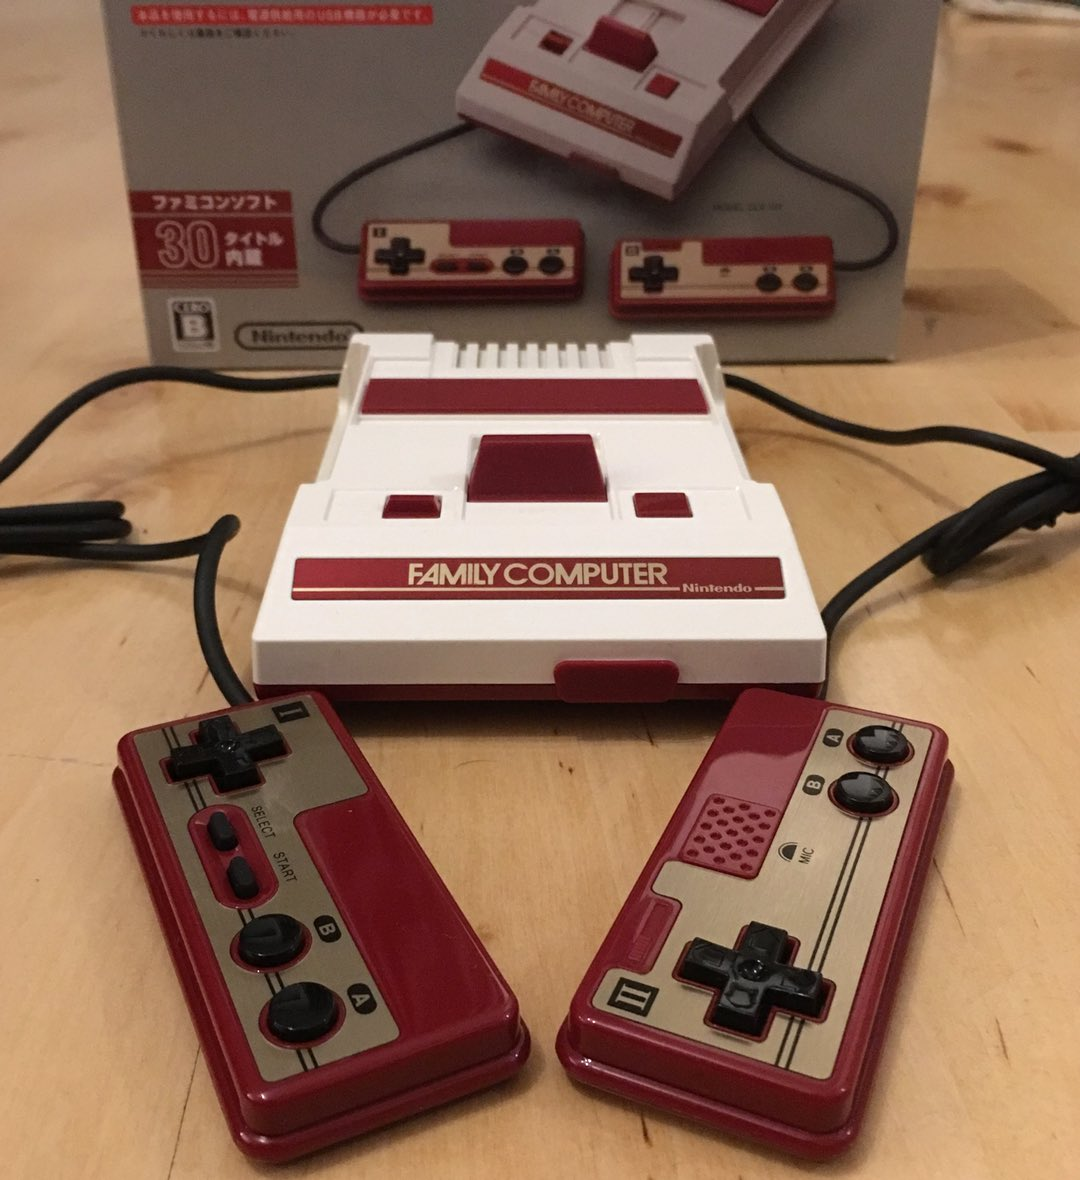 La Famicom Mini, copie conforme de la Famicom de 1983